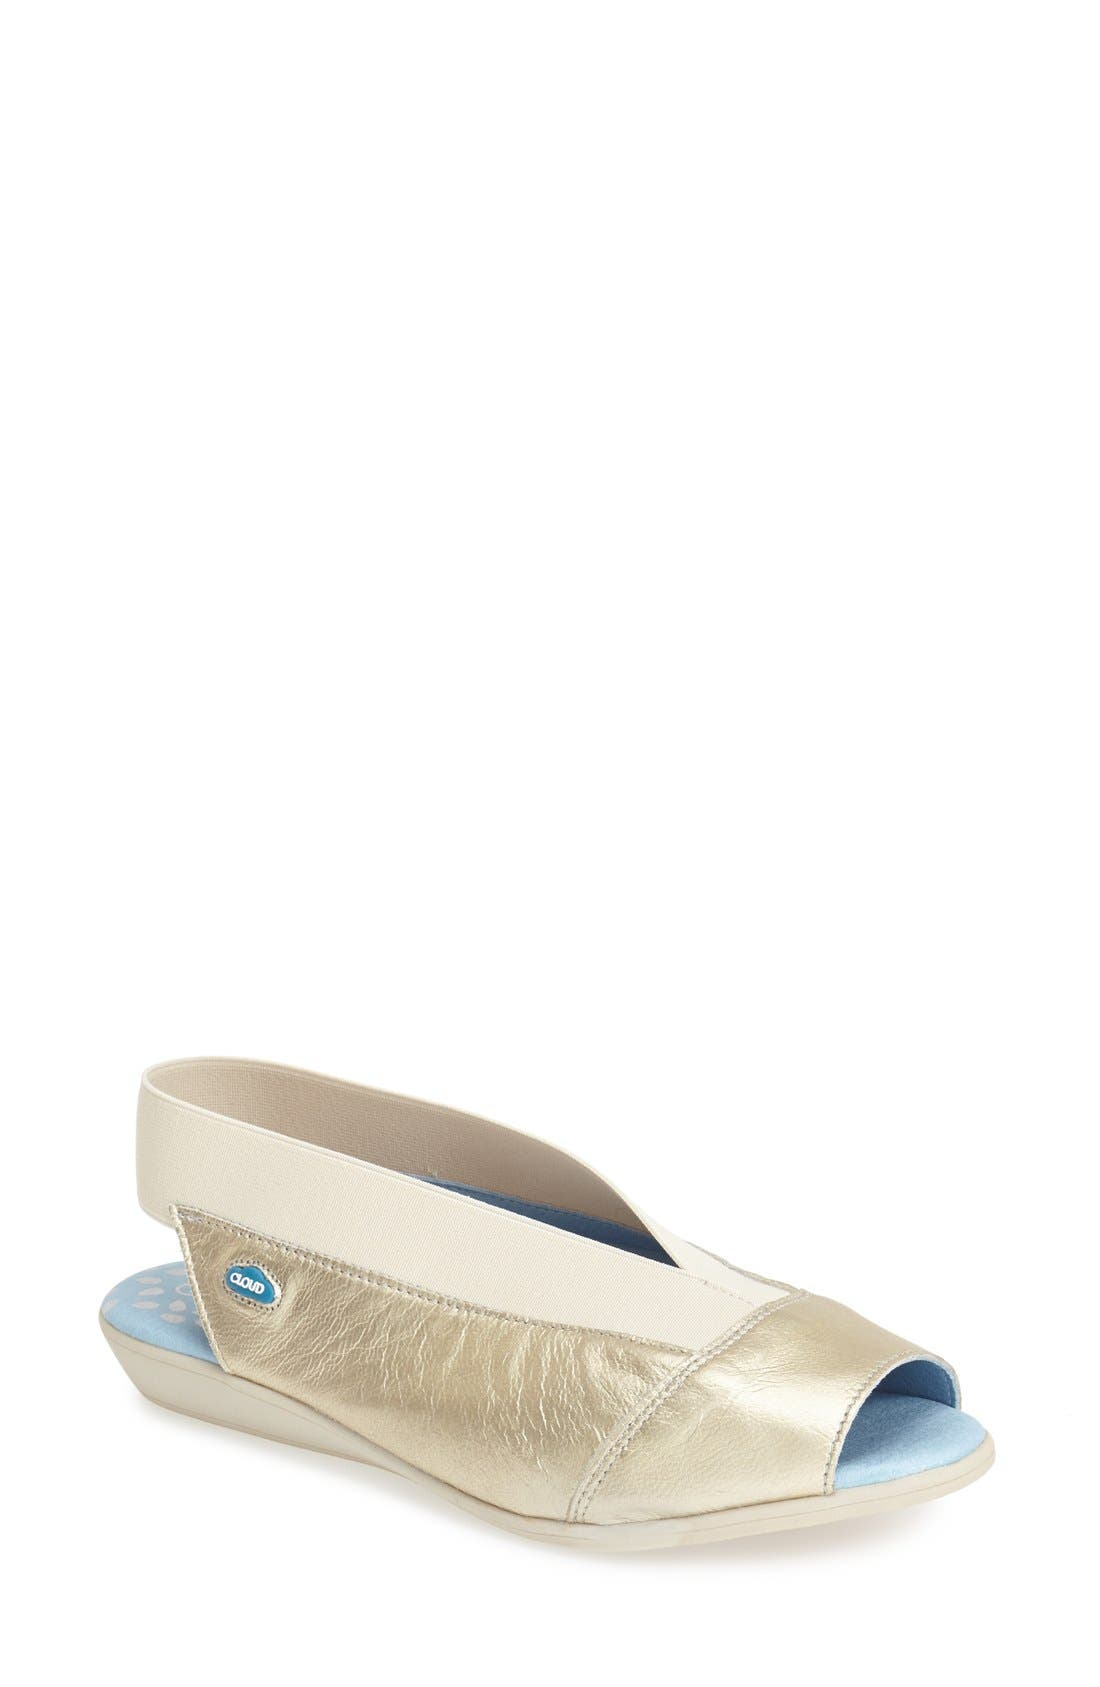 'Caliber' Peep Toe Leather Flat,                         Main,                         color, Gold